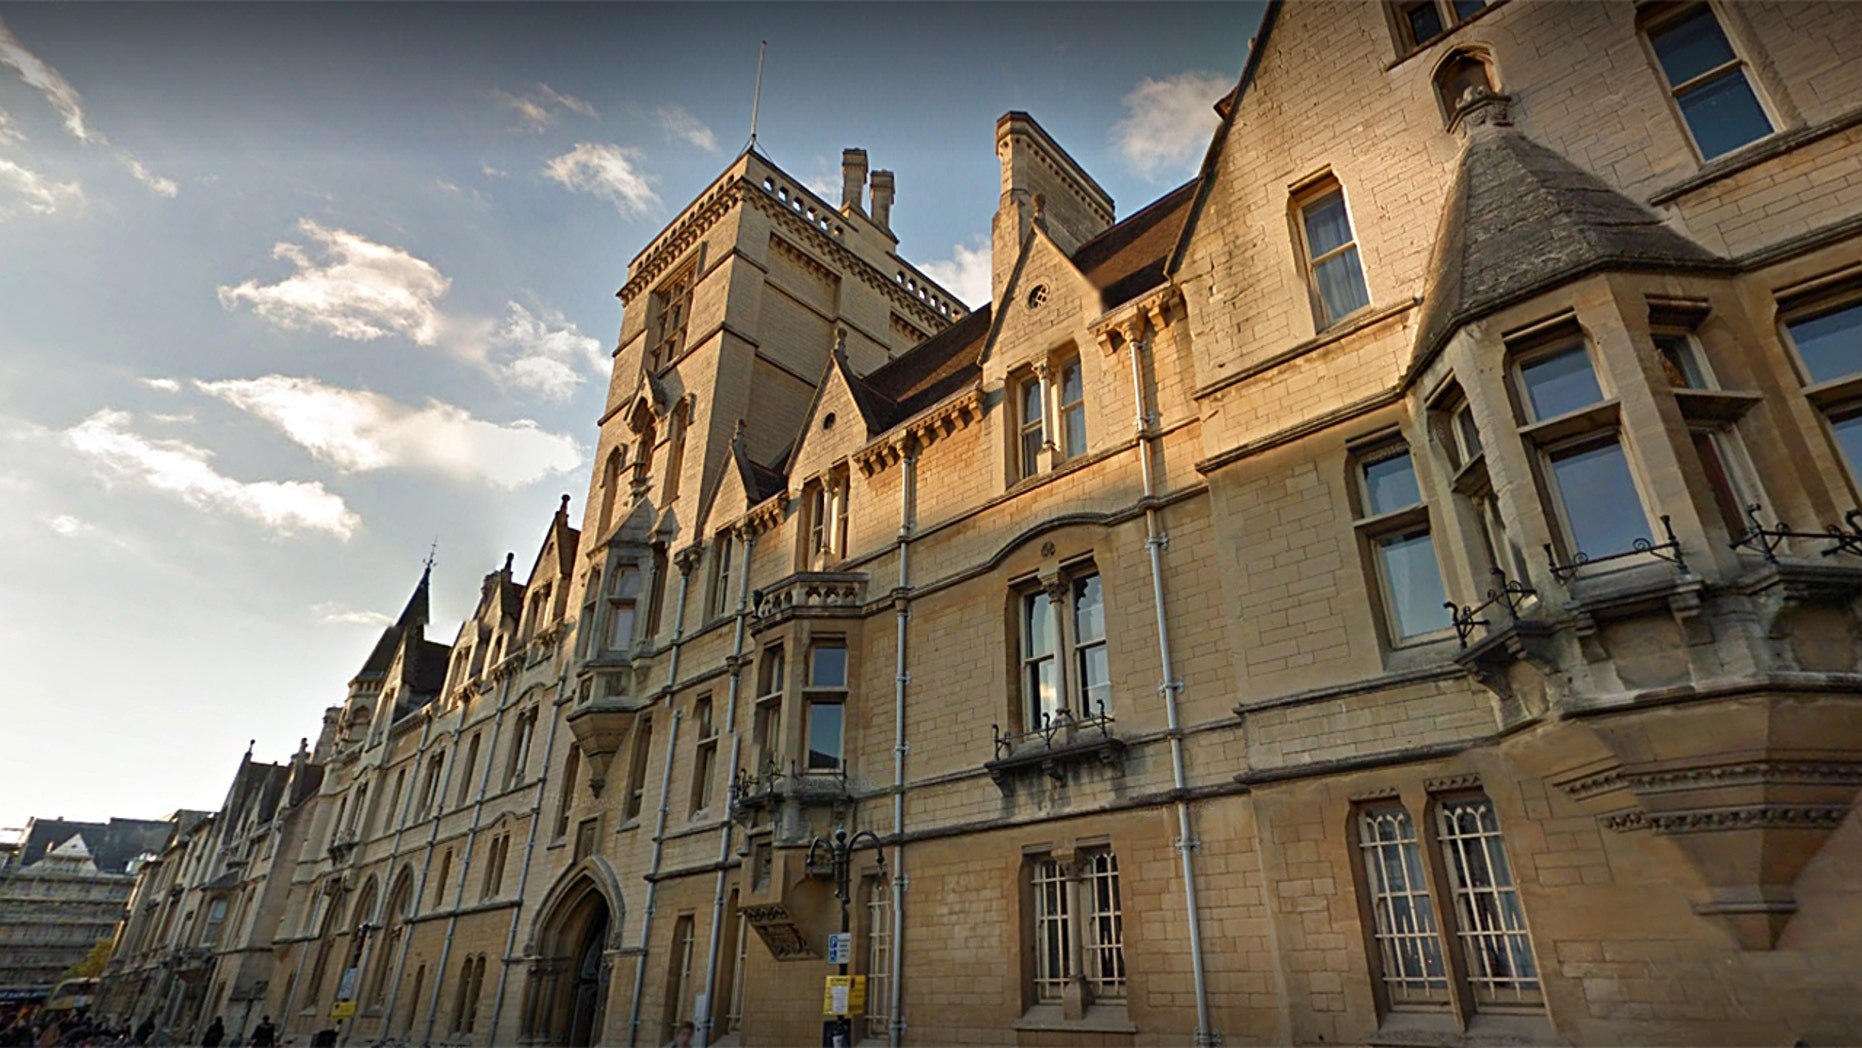 A college of Oxford University initially banned a student Christian group from appearing at a freshman fair out of fear it would alienate students who practice other religions.